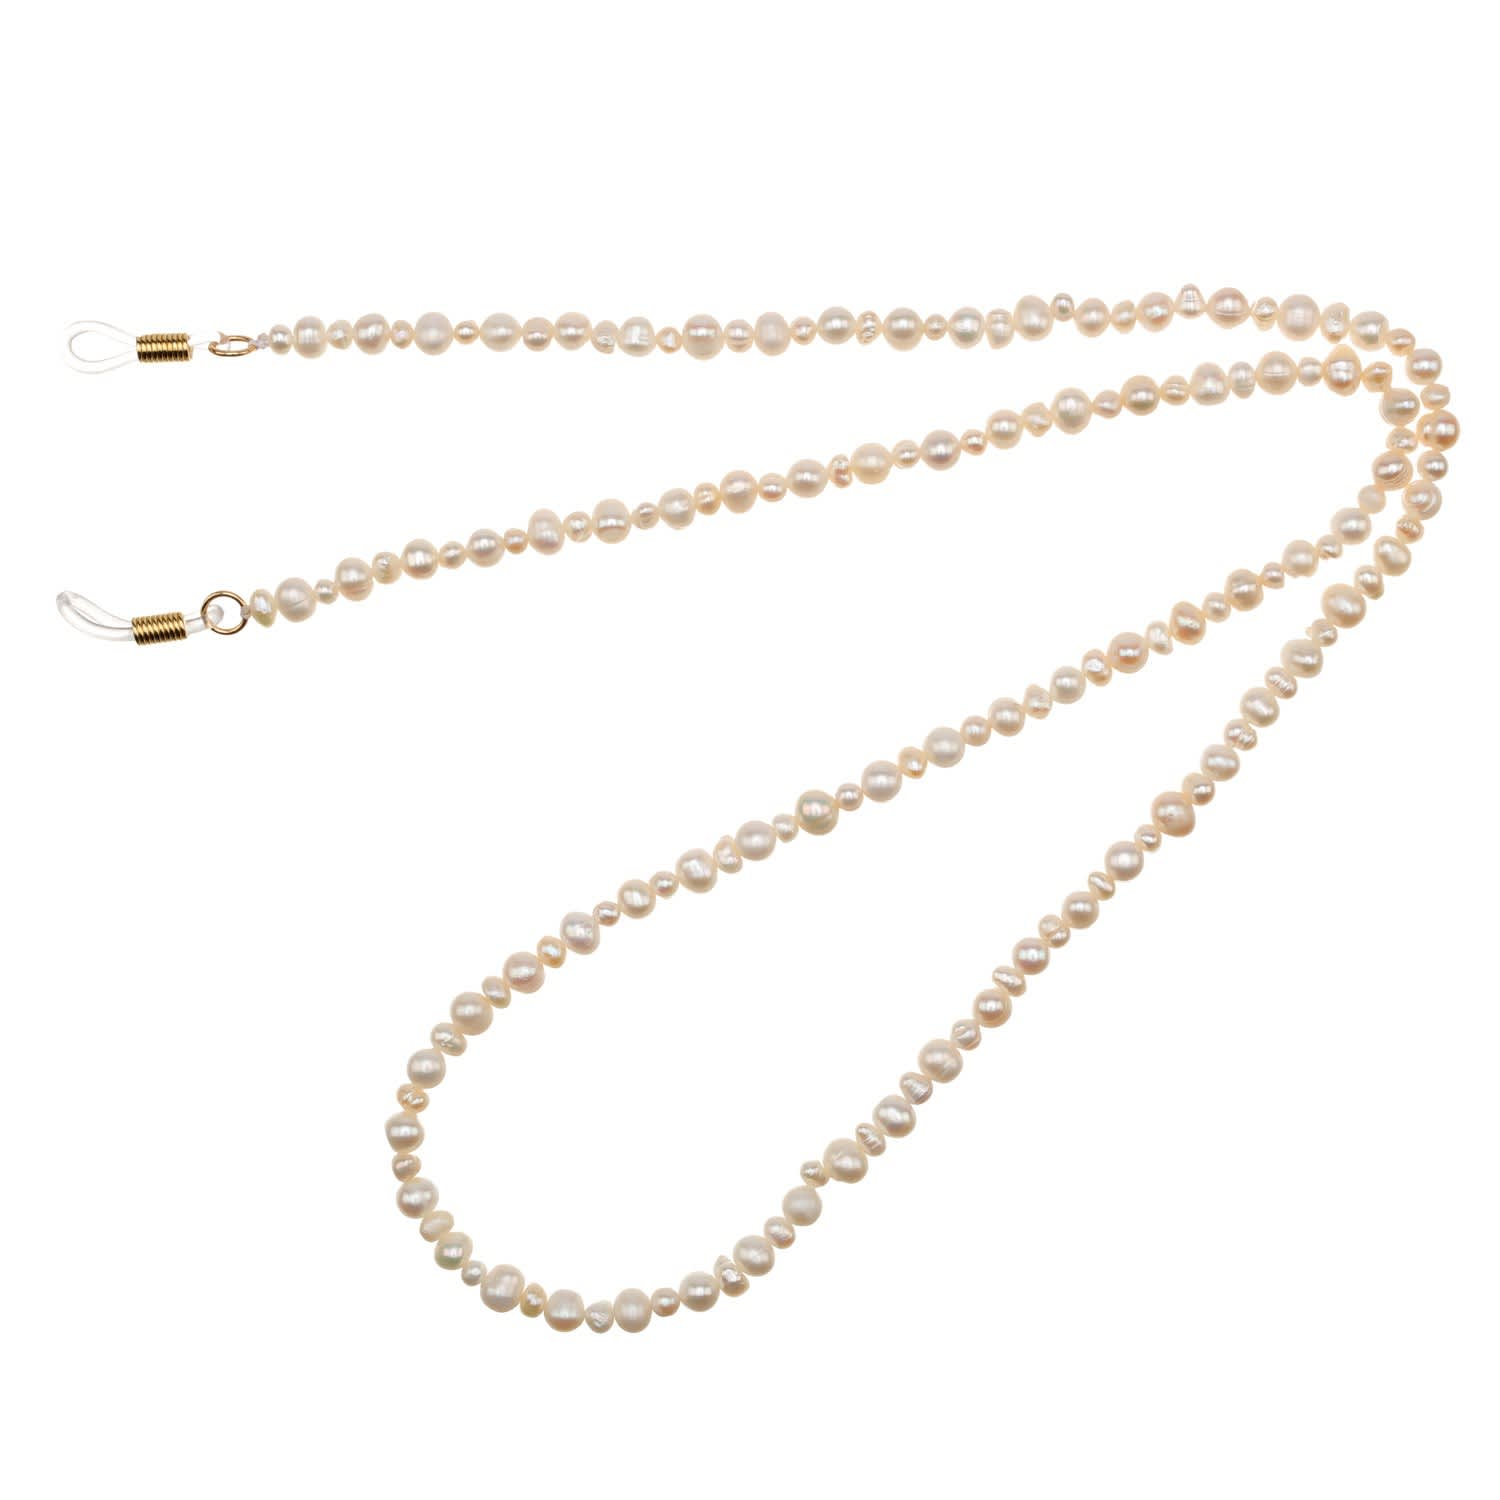 Freshwater Pearl Sunglasses Chain Talis Chains Wolf & Badger